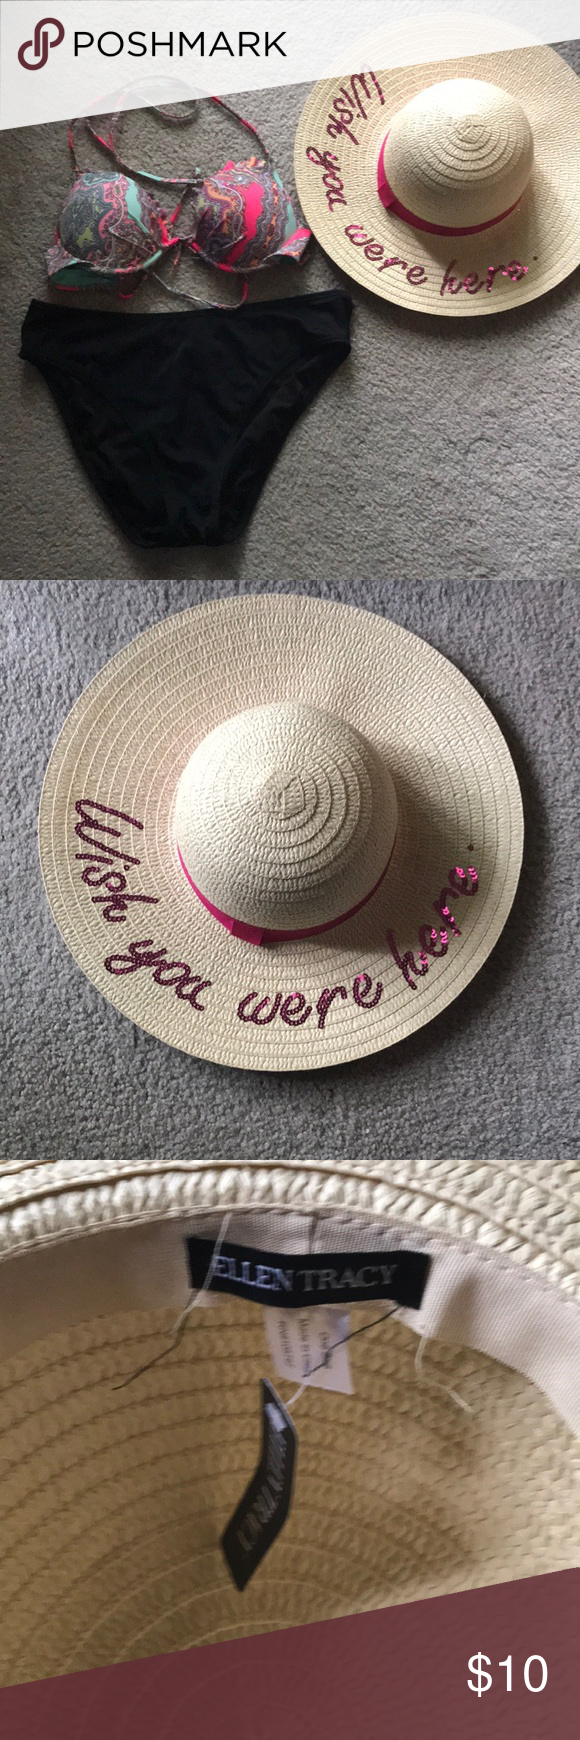 """c32a9c6ec57eb6 Straw and hot pink hat with """"Wish you were here sentiment"""" on it! Great  coverage for sun protection and a trendy accent for your summer photos! Ellen  Tracy ..."""